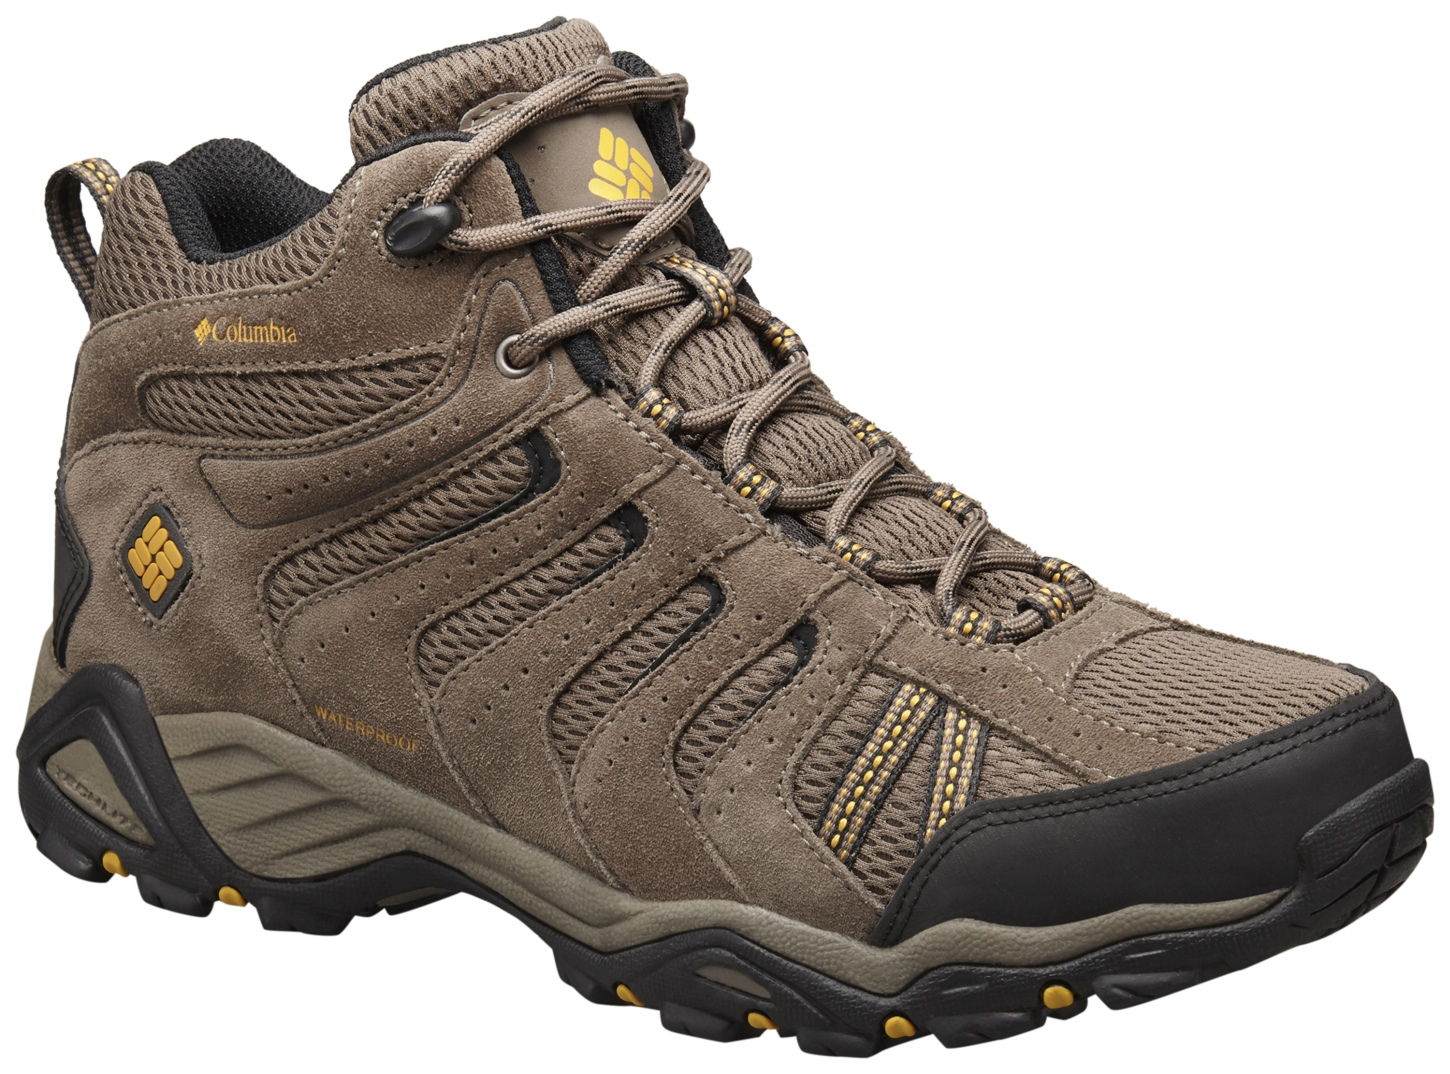 Columbia Men's North Plains II Waterproof Mid Shoes Mud, Squash-30